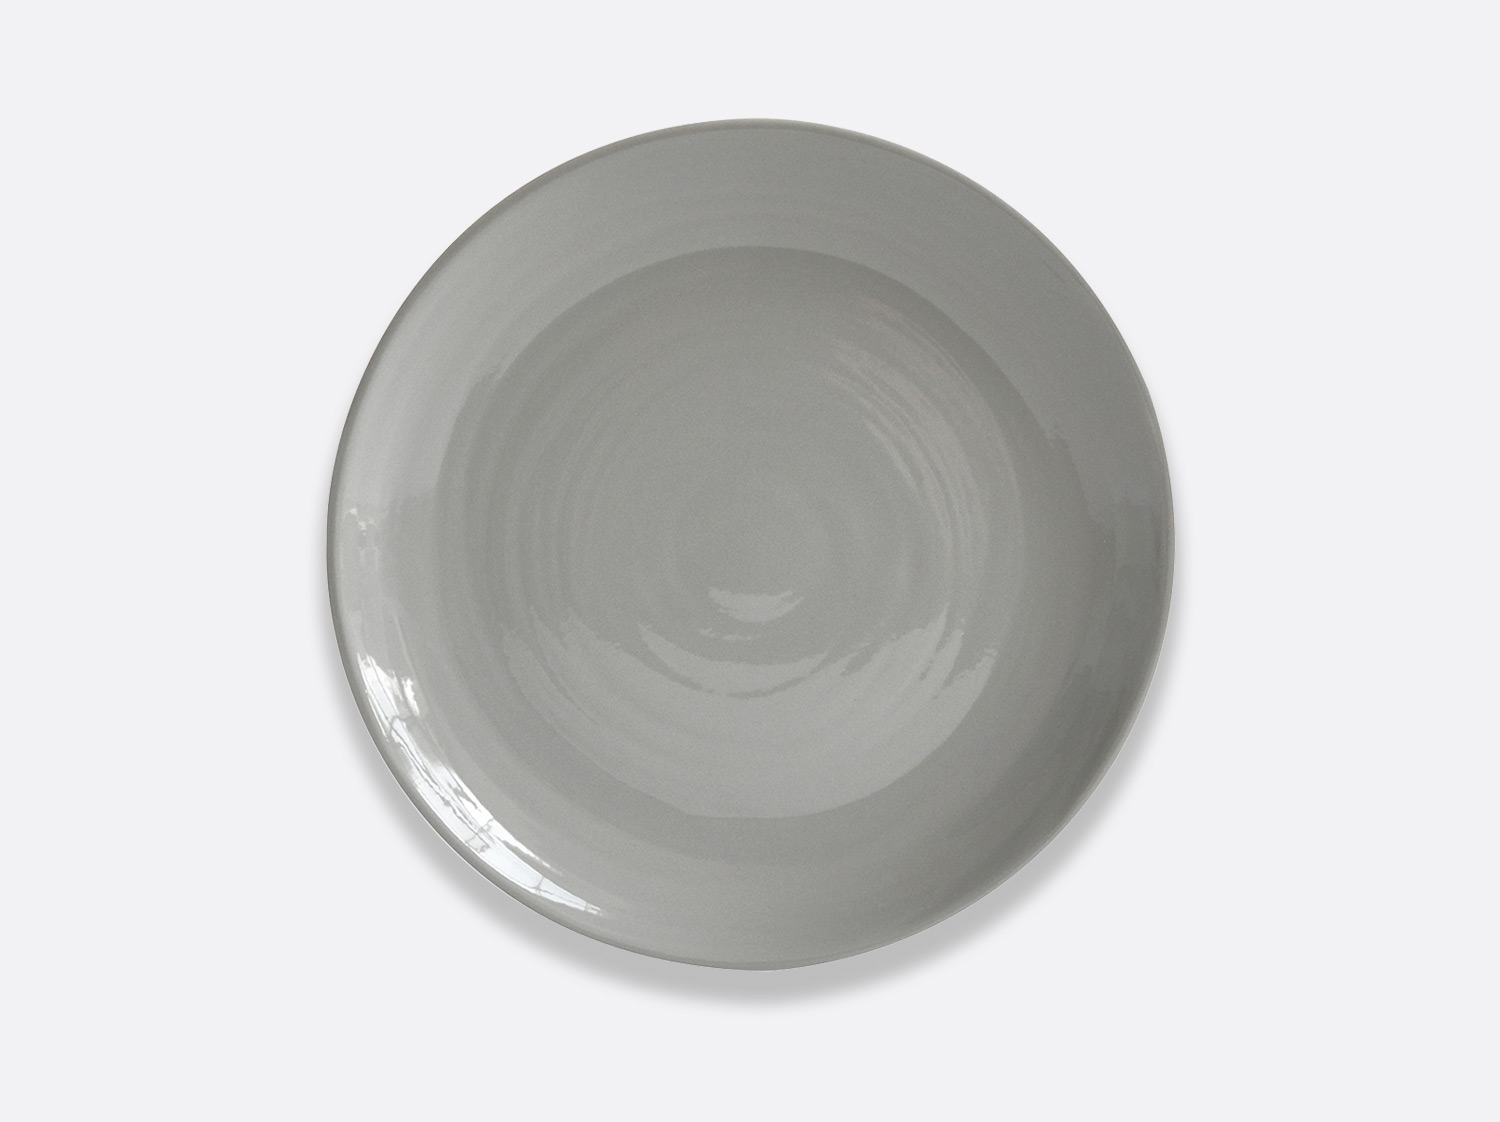 Assiette creuse à pâtes 24 cm en porcelaine de la collection Origine gris Bernardaud